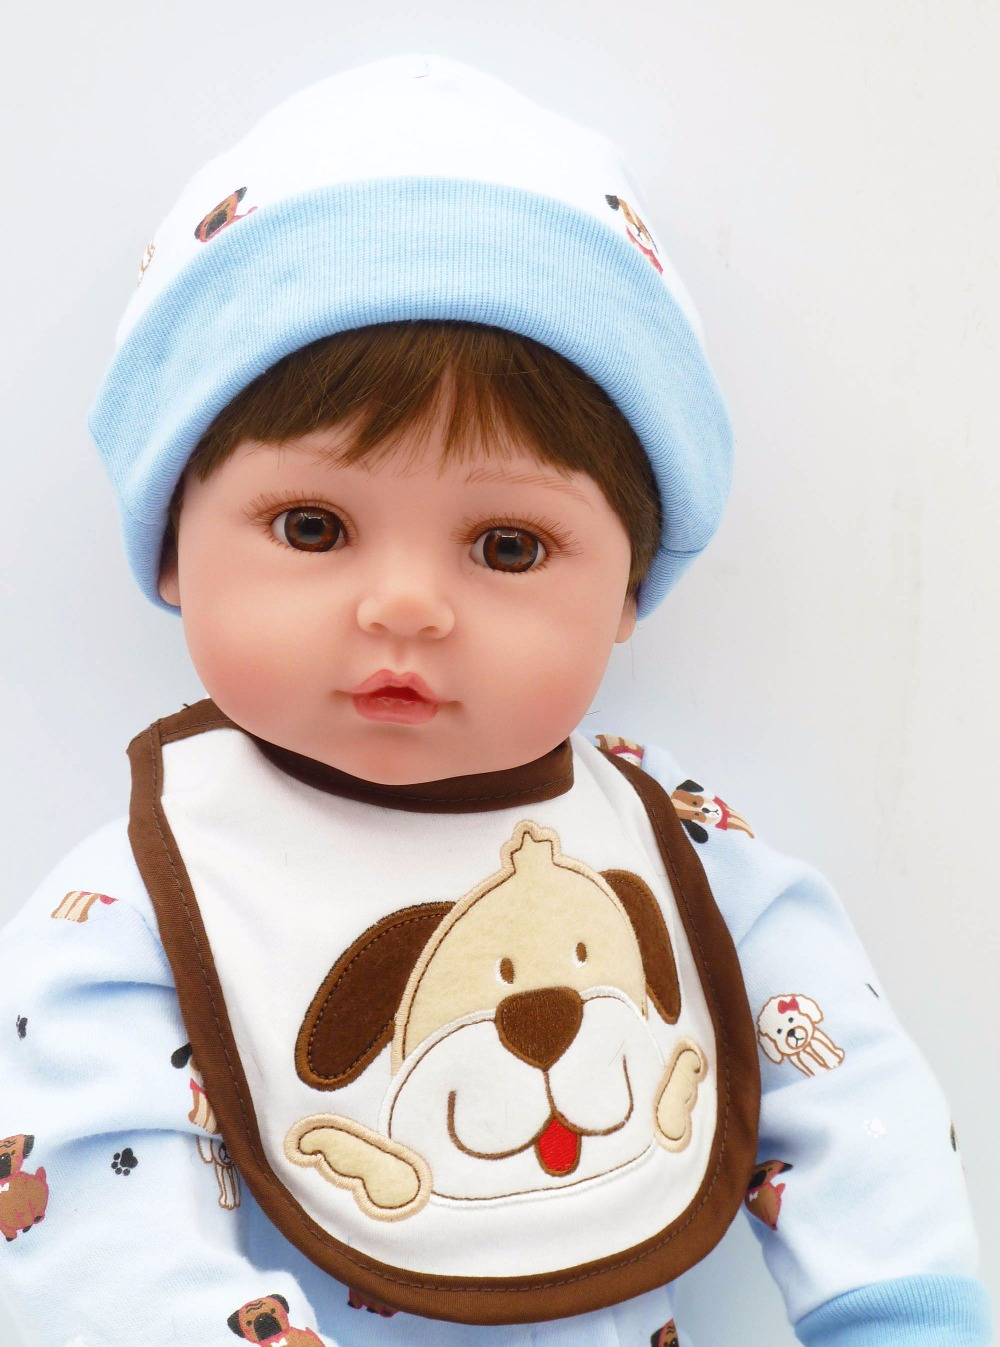 big size doll 24 New arrival Handmade Silicone Vinyl Lifelike Toddler Baby boy Girl Kid Doll Reborn big size Silicone Juguetes : 91lifestyle